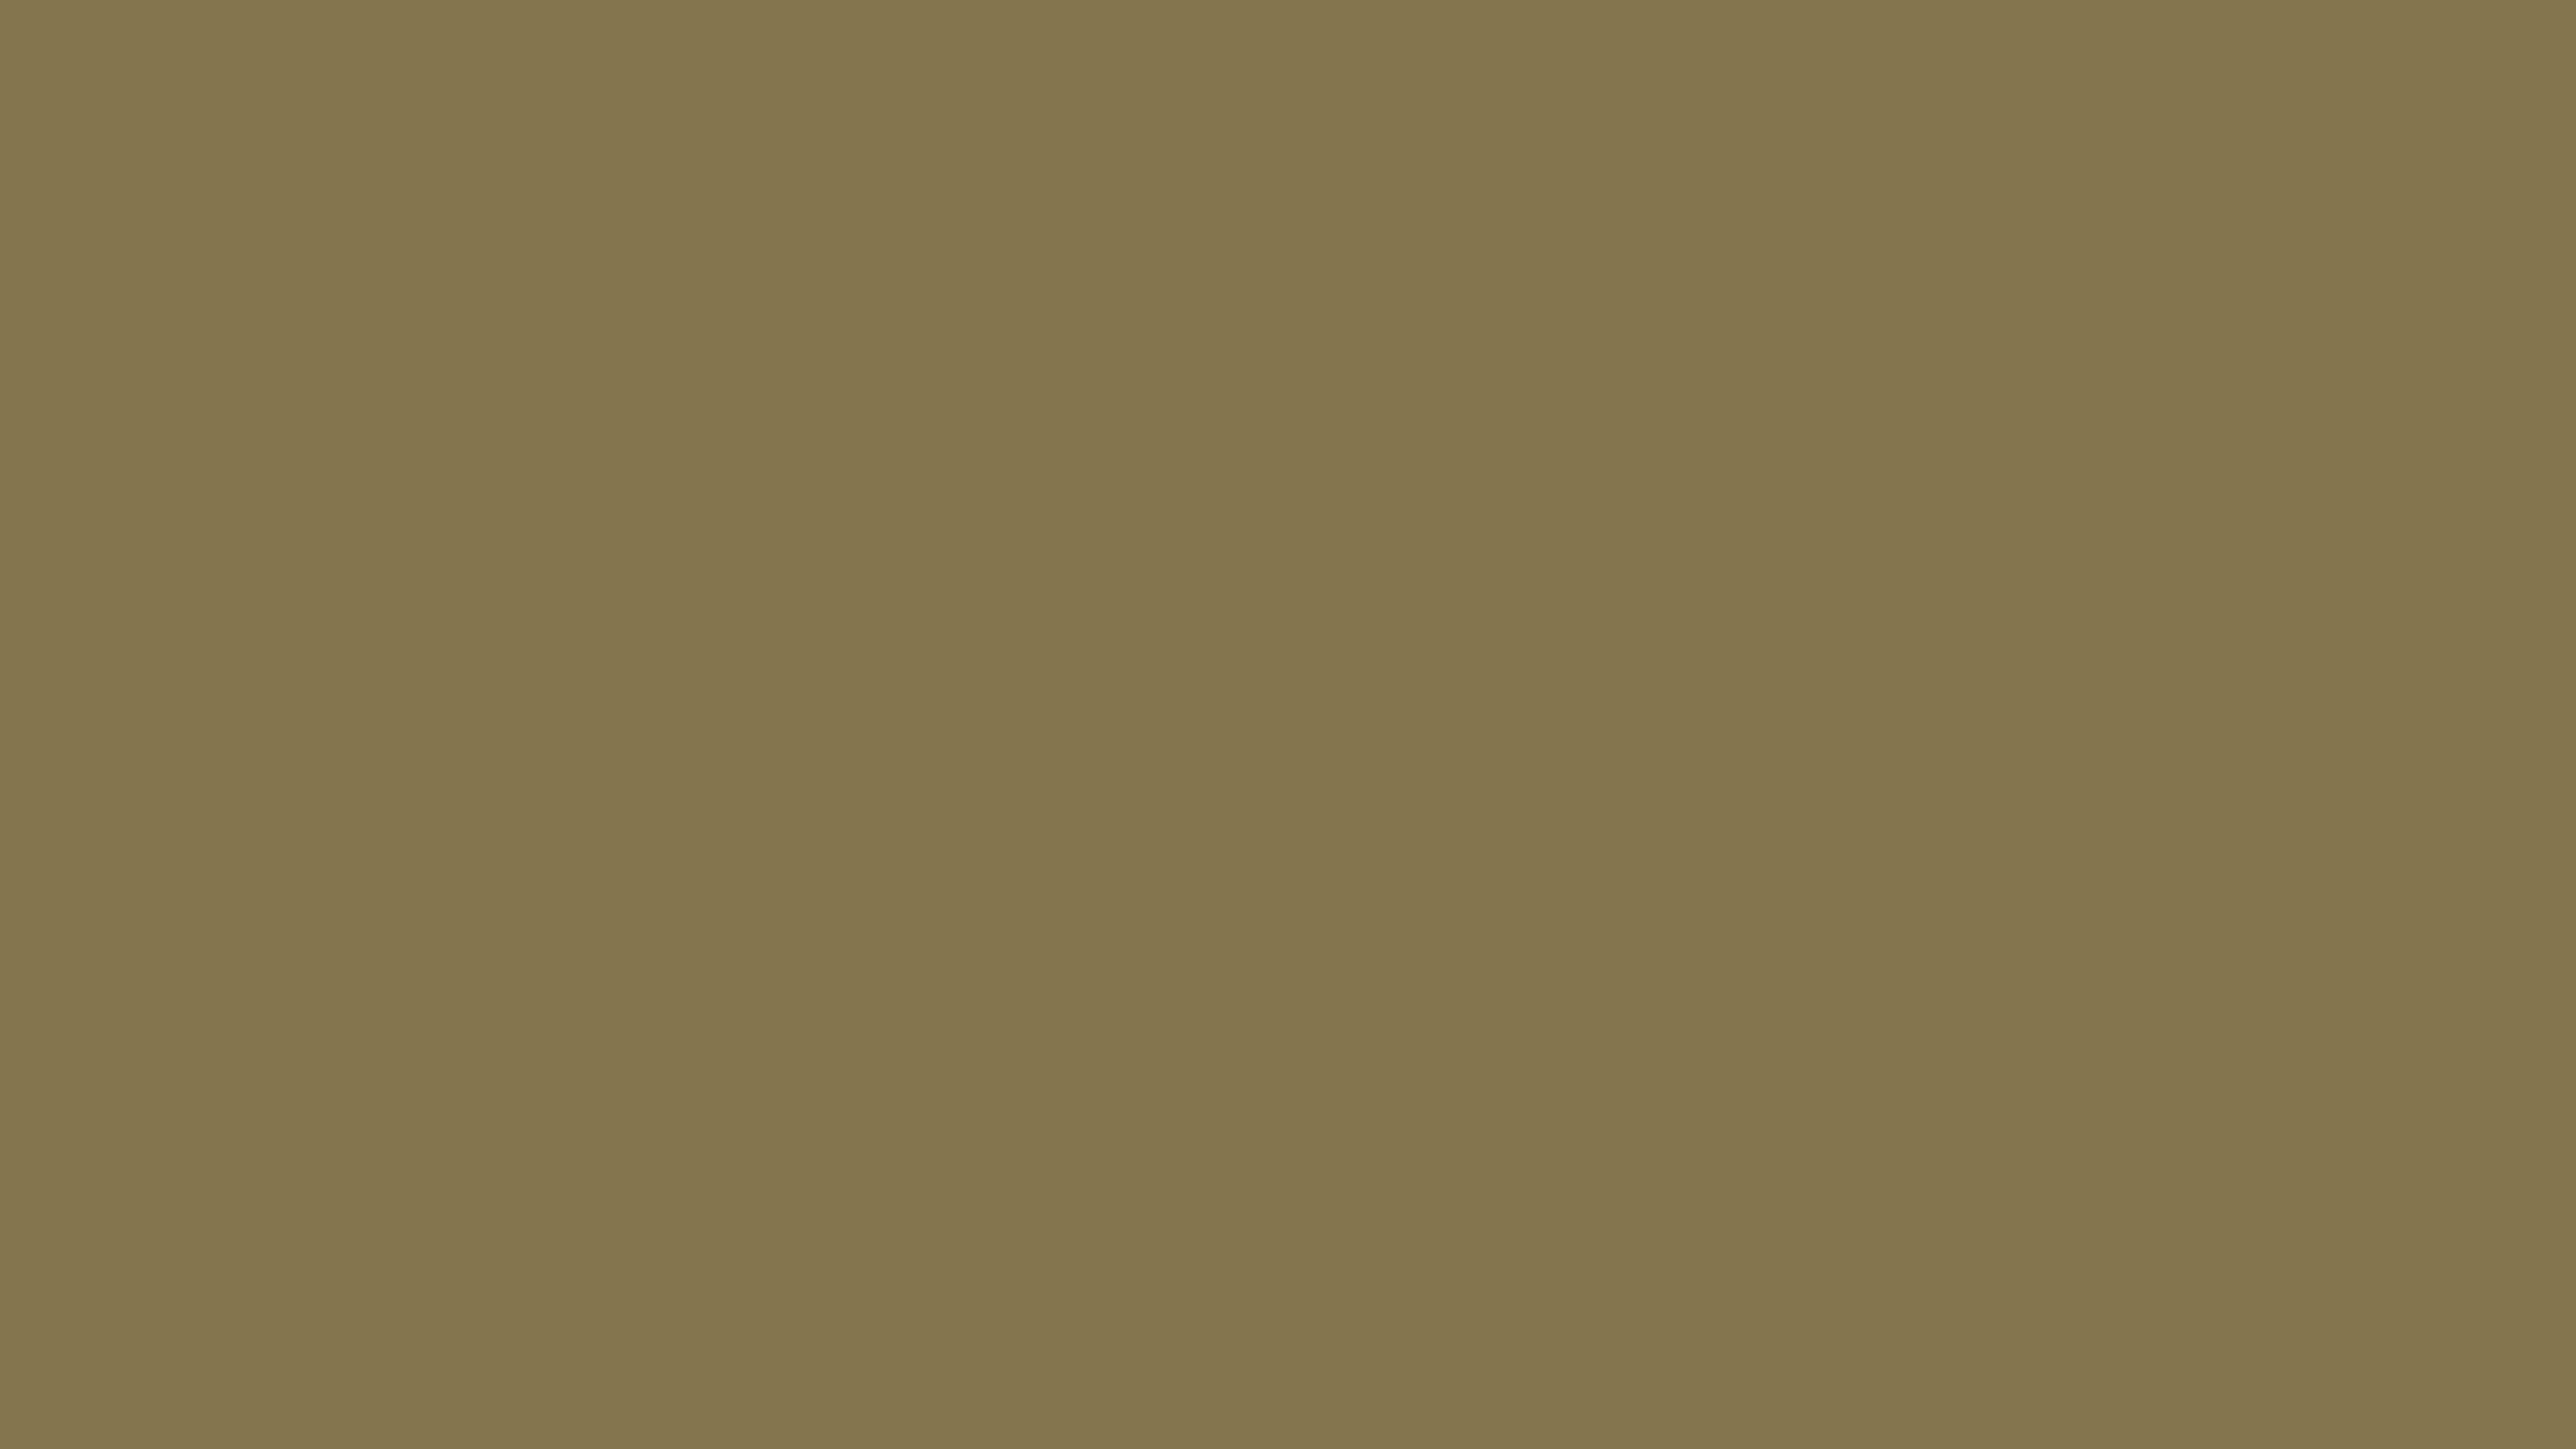 3840x2160 Gold Fusion Solid Color Background